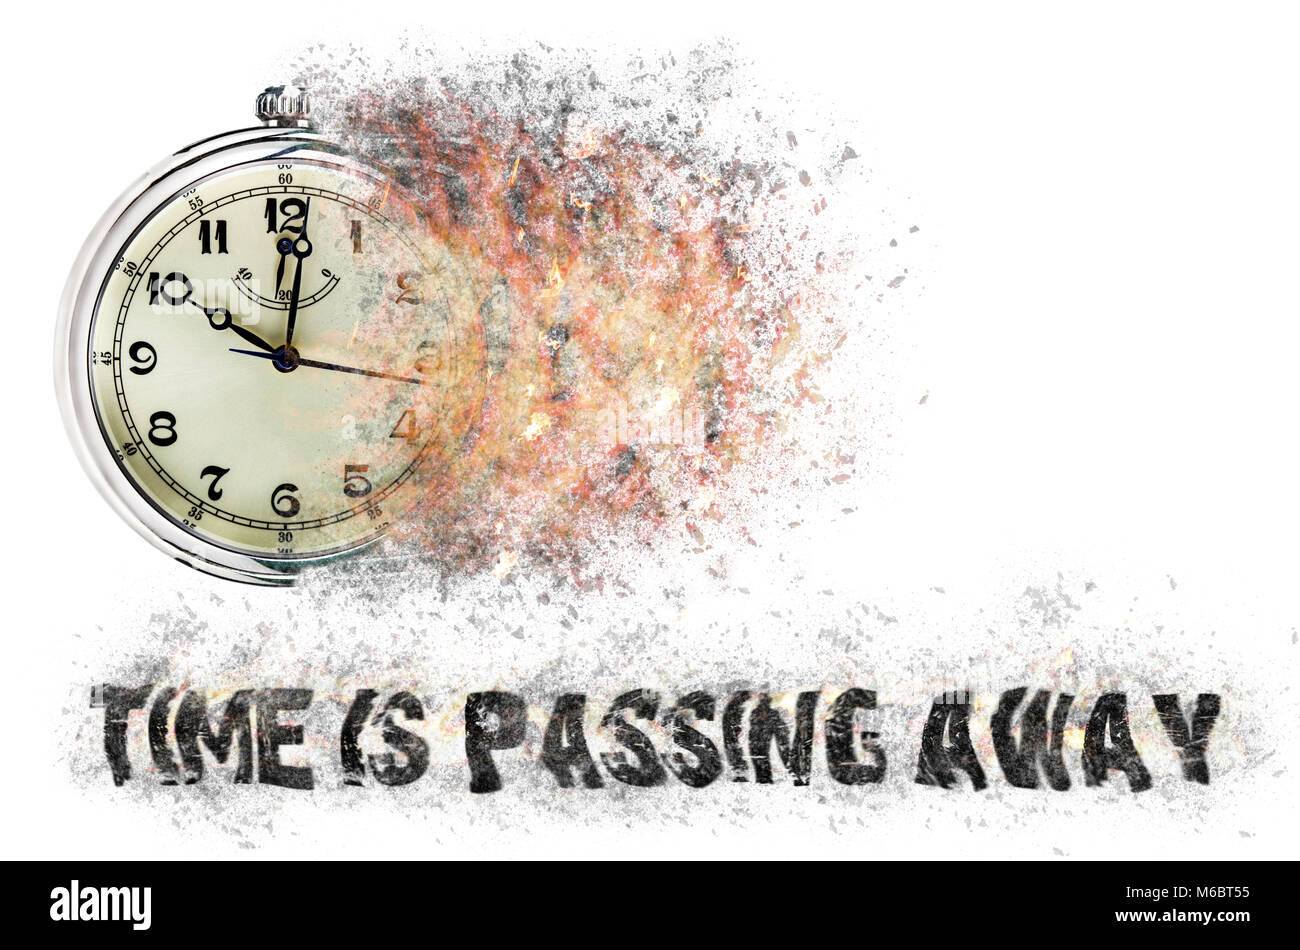 Time is running out concept shows clock that is dissolving away into little particles. Stock Photo